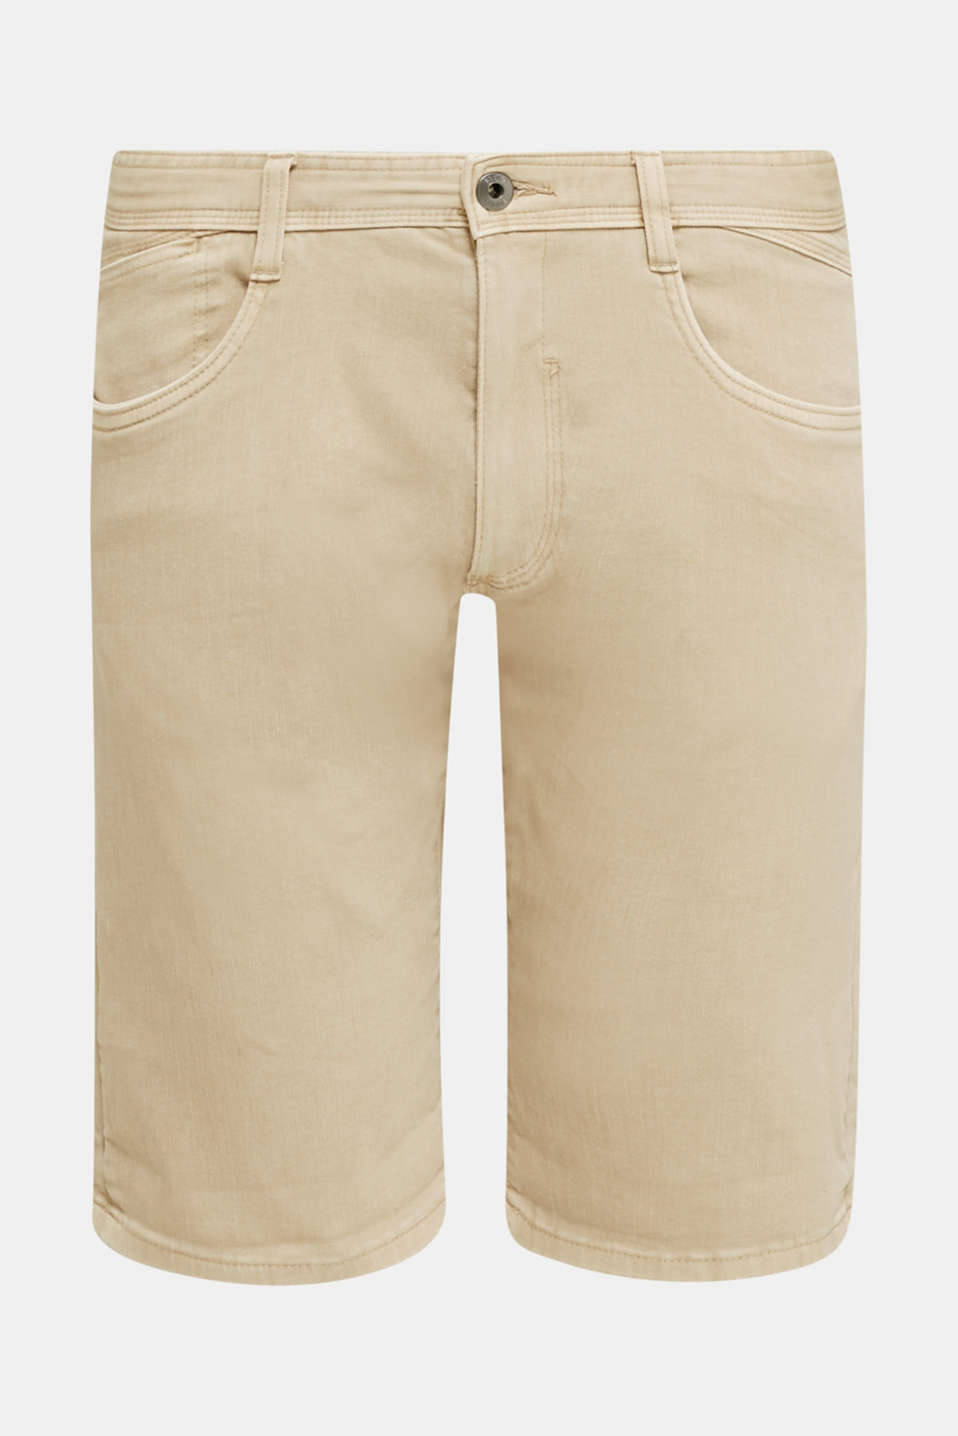 EarthColors®: Stretch Bermuda shorts, BEIGE, detail image number 6